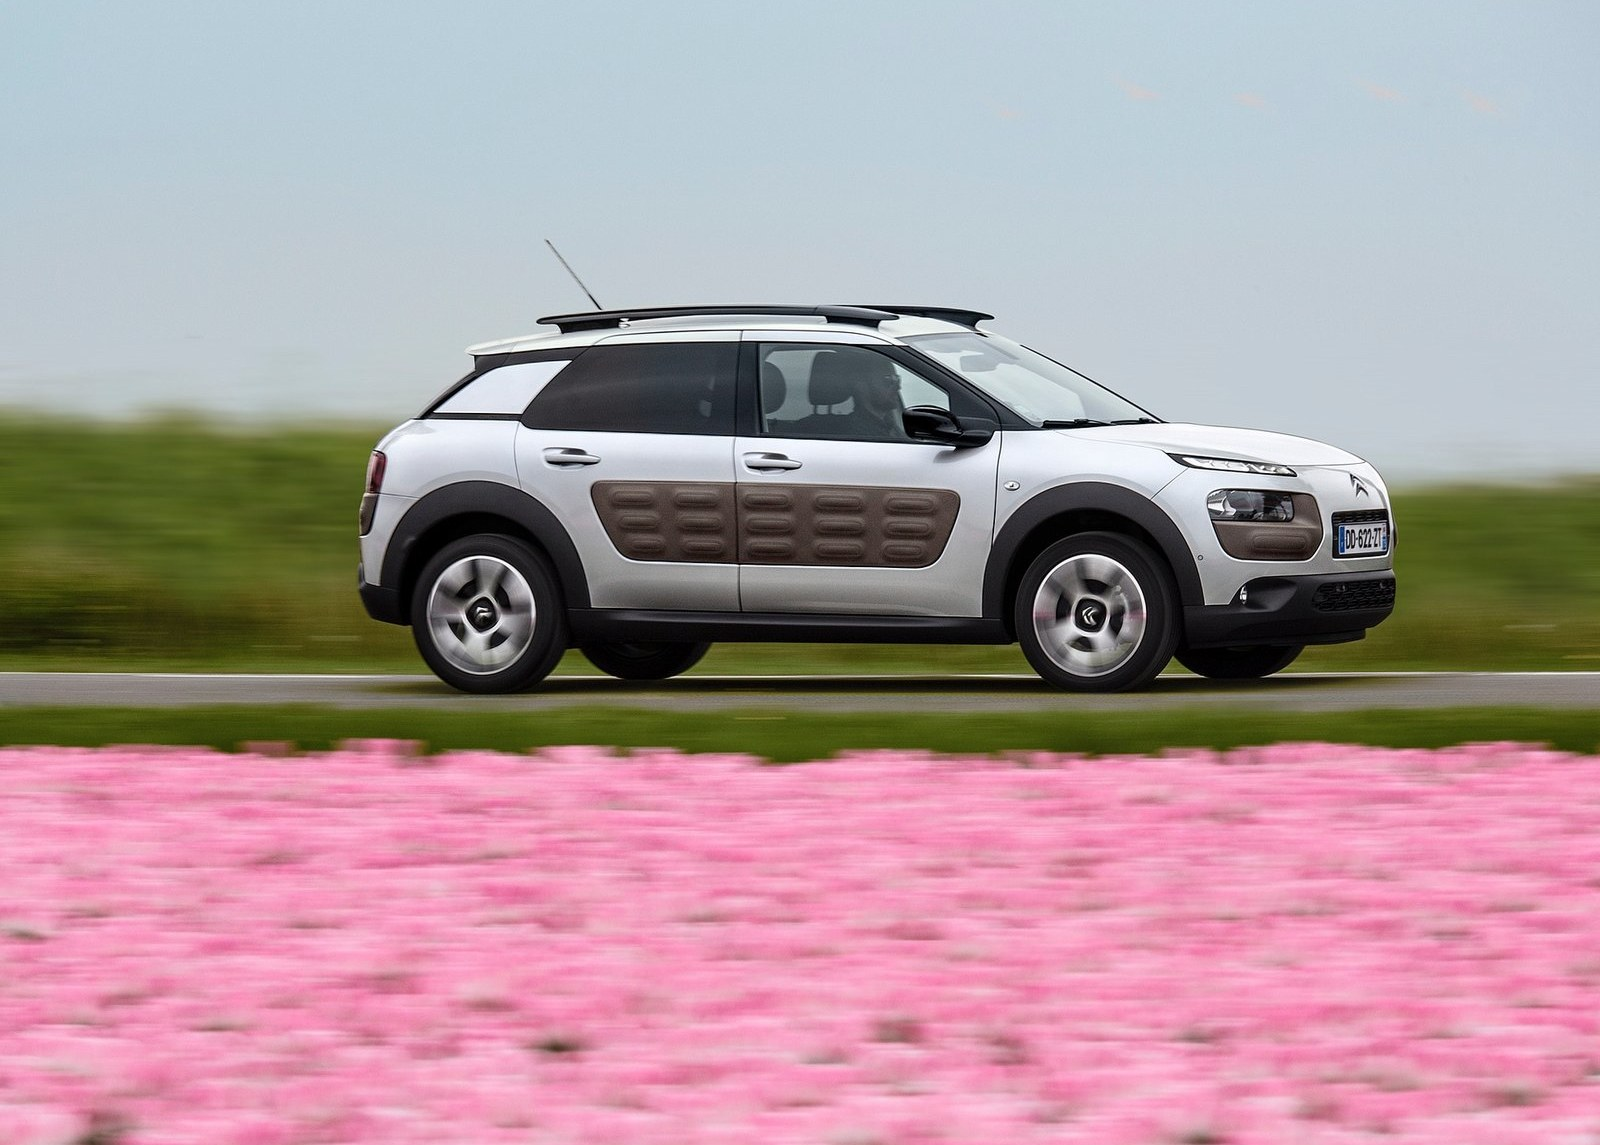 2015 citroen c4 cactus cars exclusive videos and photos. Black Bedroom Furniture Sets. Home Design Ideas